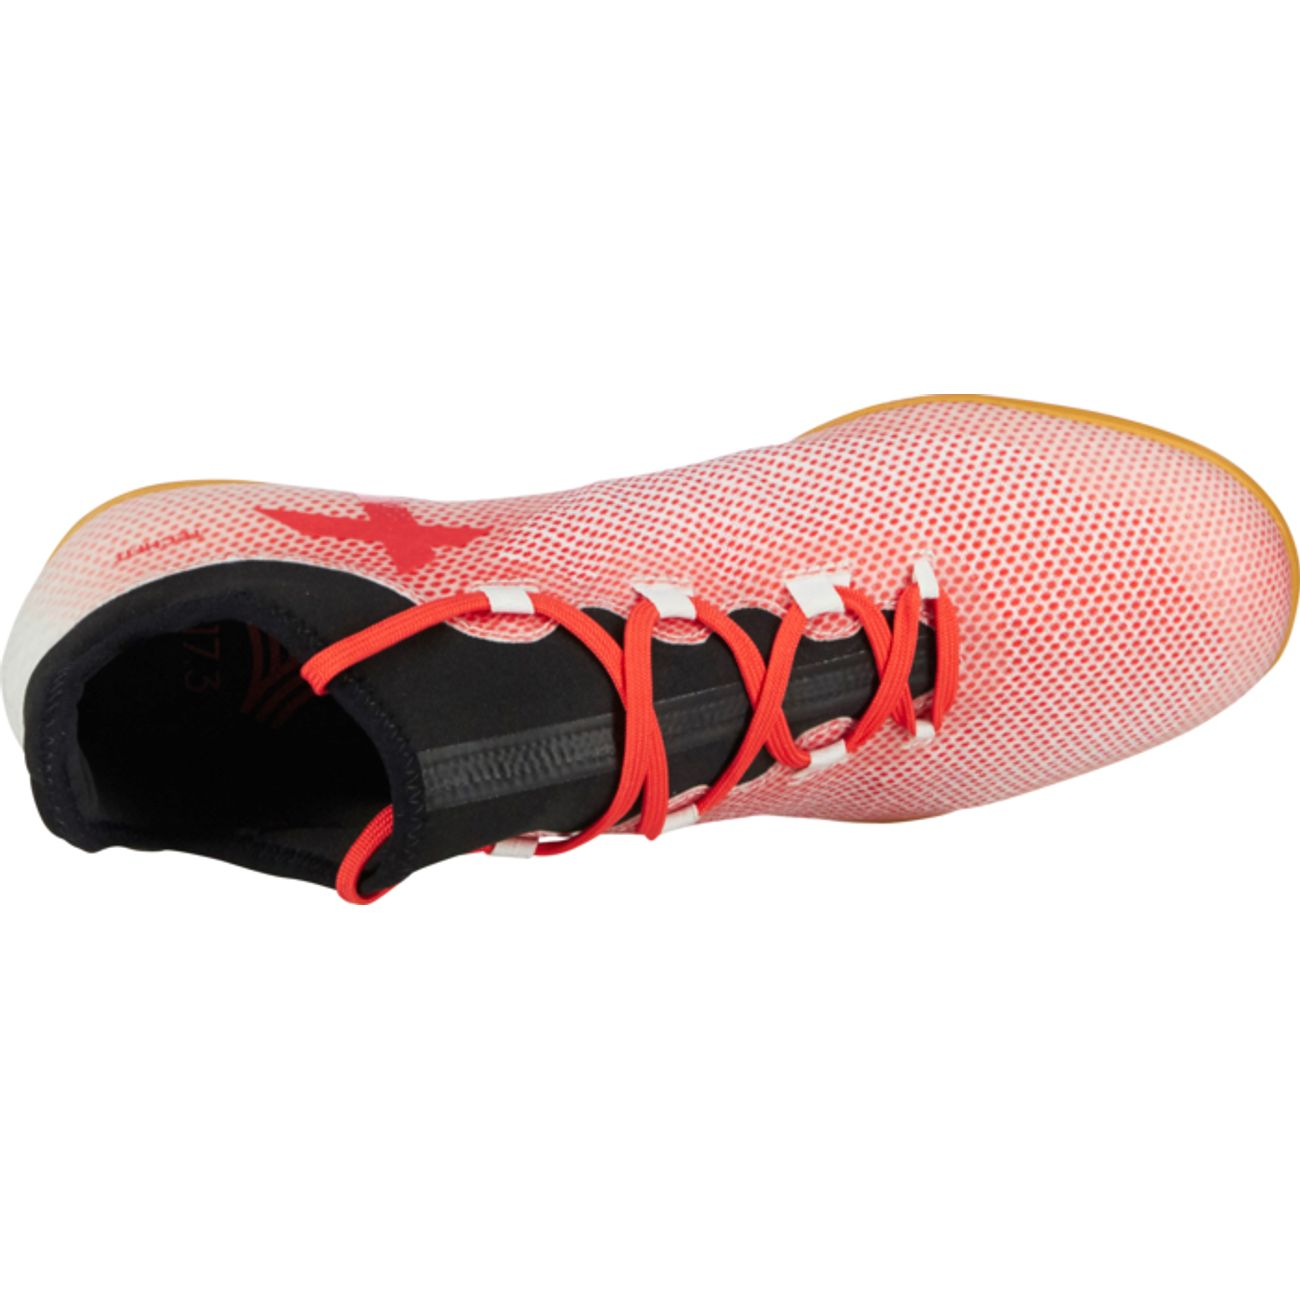 Chaussure Football Adulte   ADIDAS X TANGO 17.3 IN